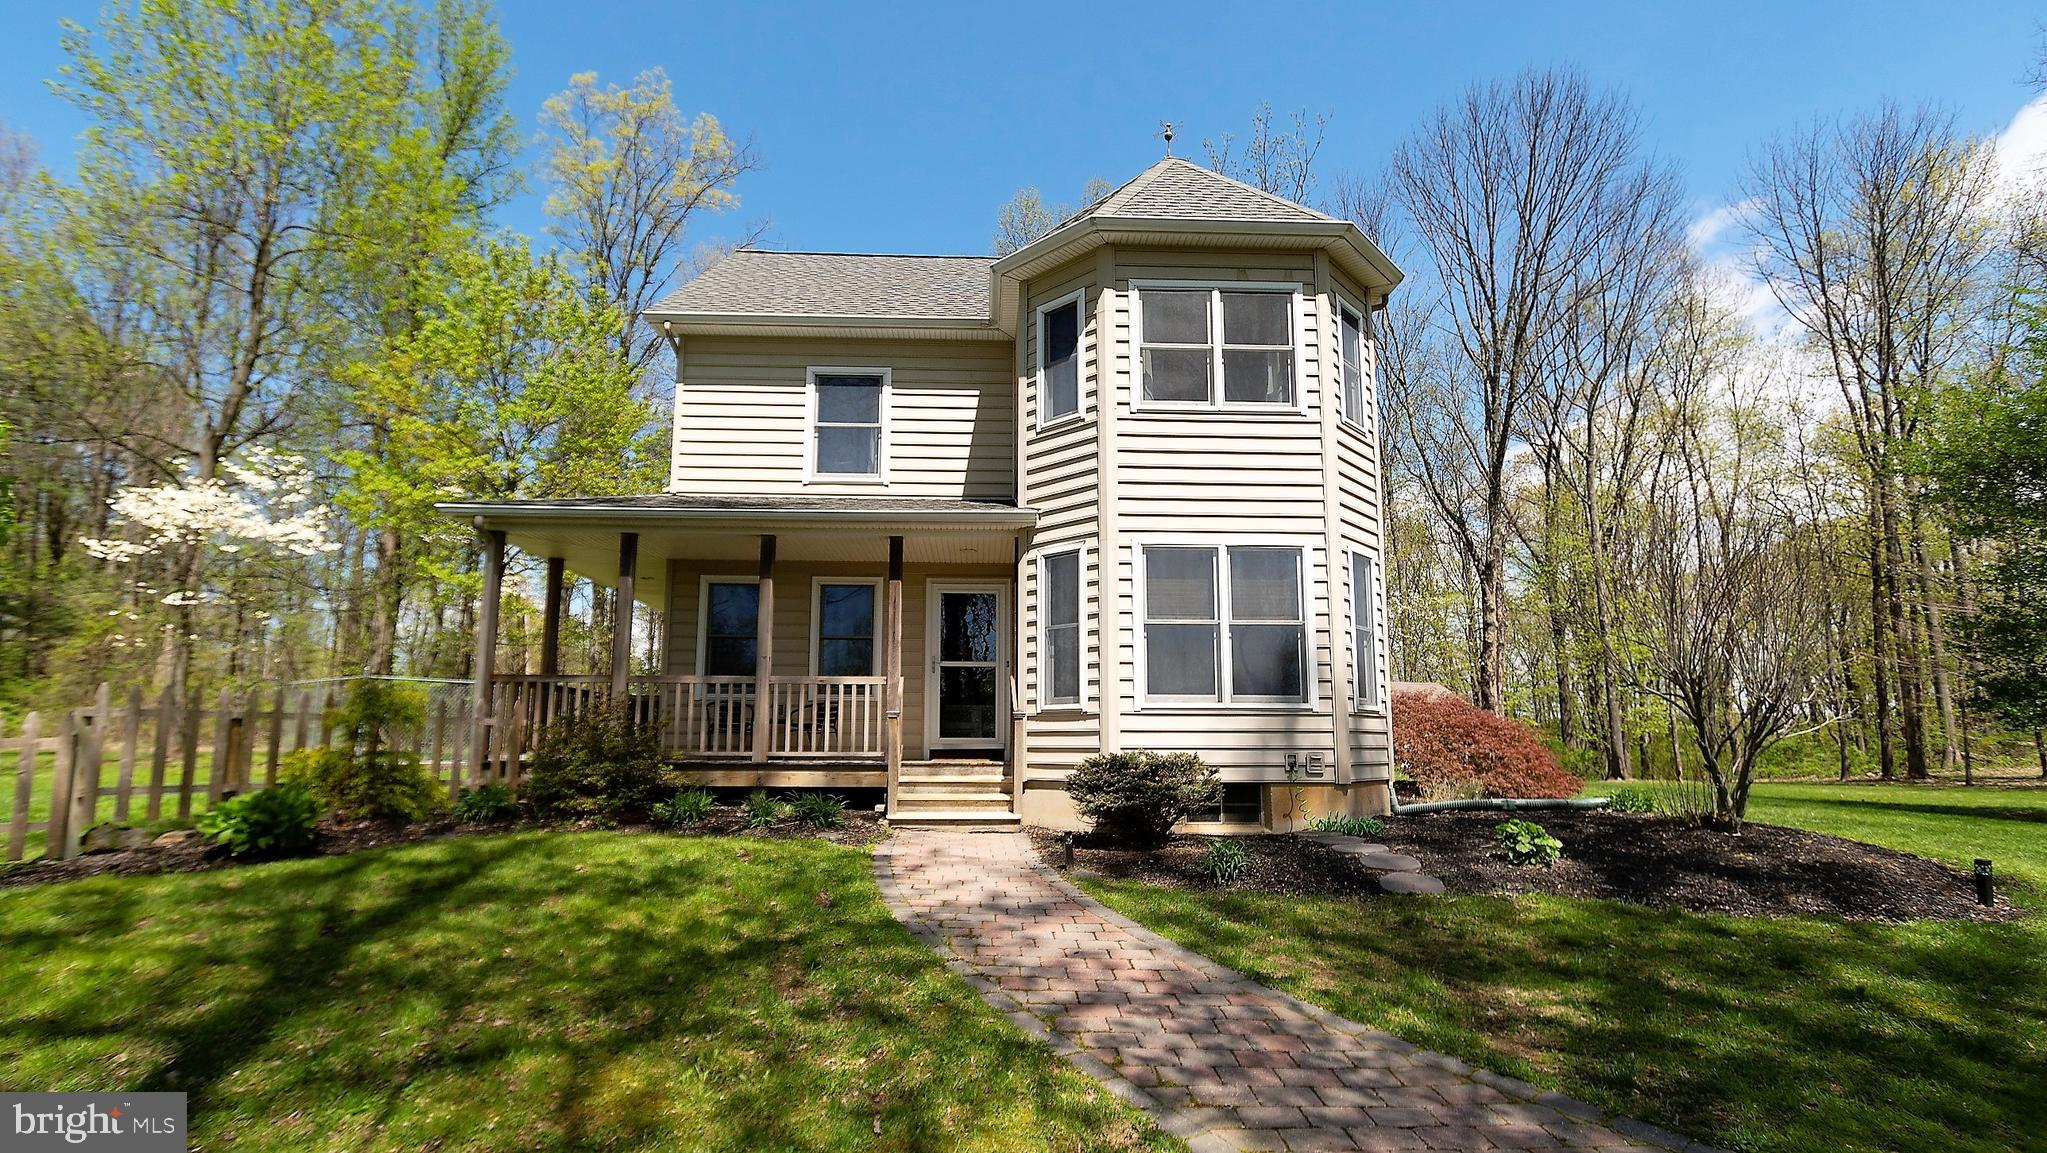 181 TOWNSHIP ROAD, MACUNGIE, PA 18062